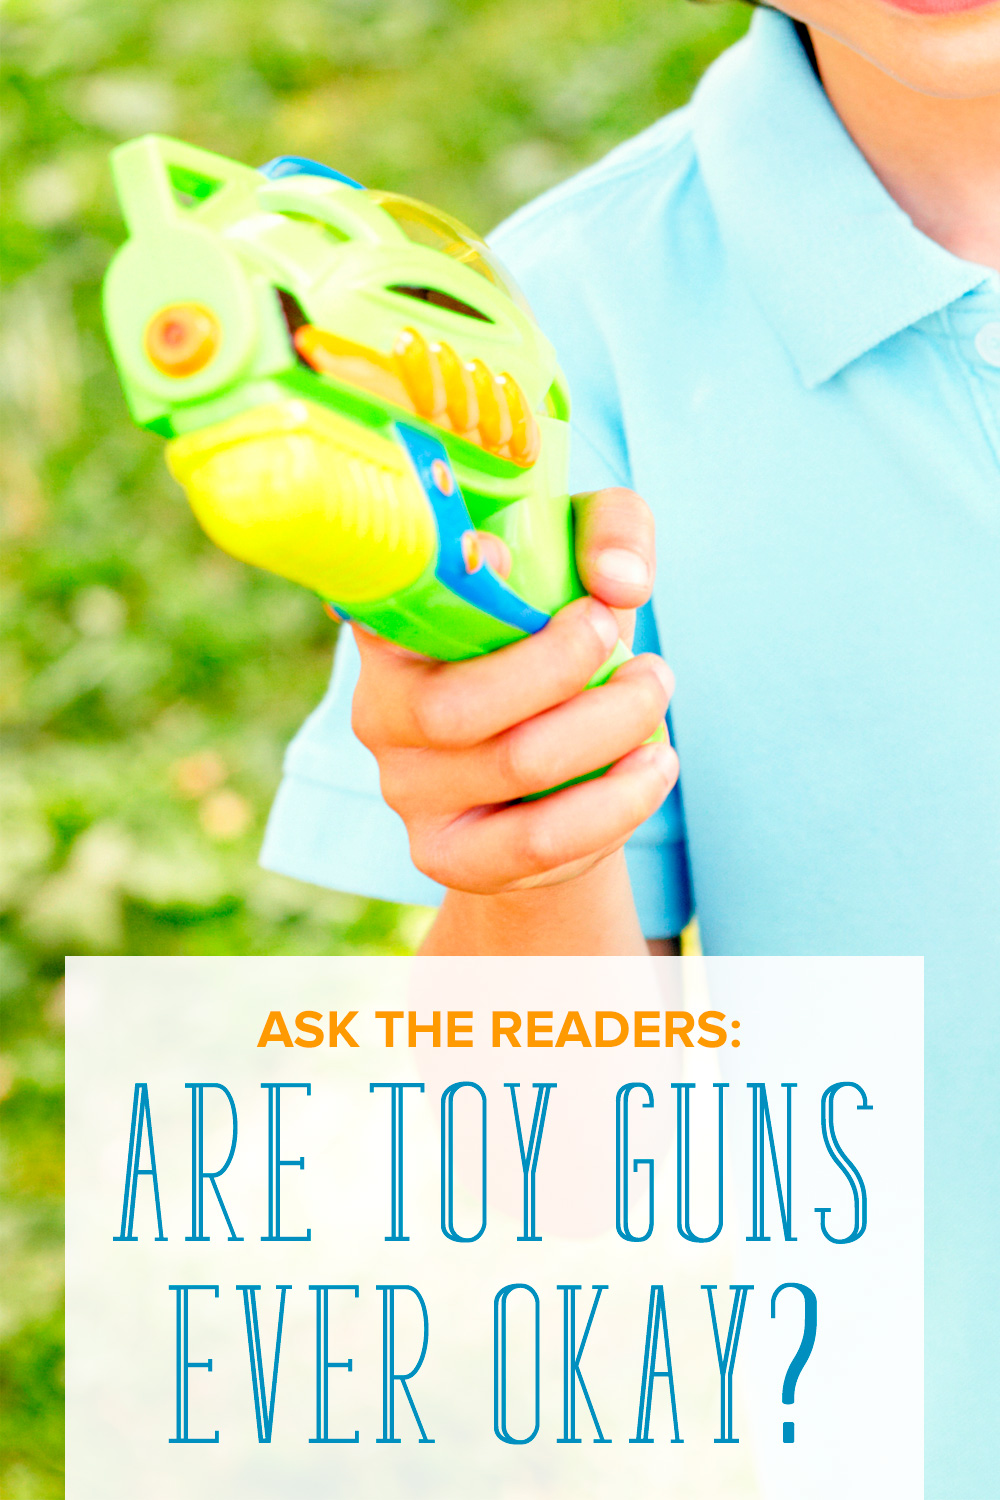 Do you let your kids play with toy guns? Are toy guns ever okay? Discuss whether toy guns—even as play things—should be allowed and encouraged.